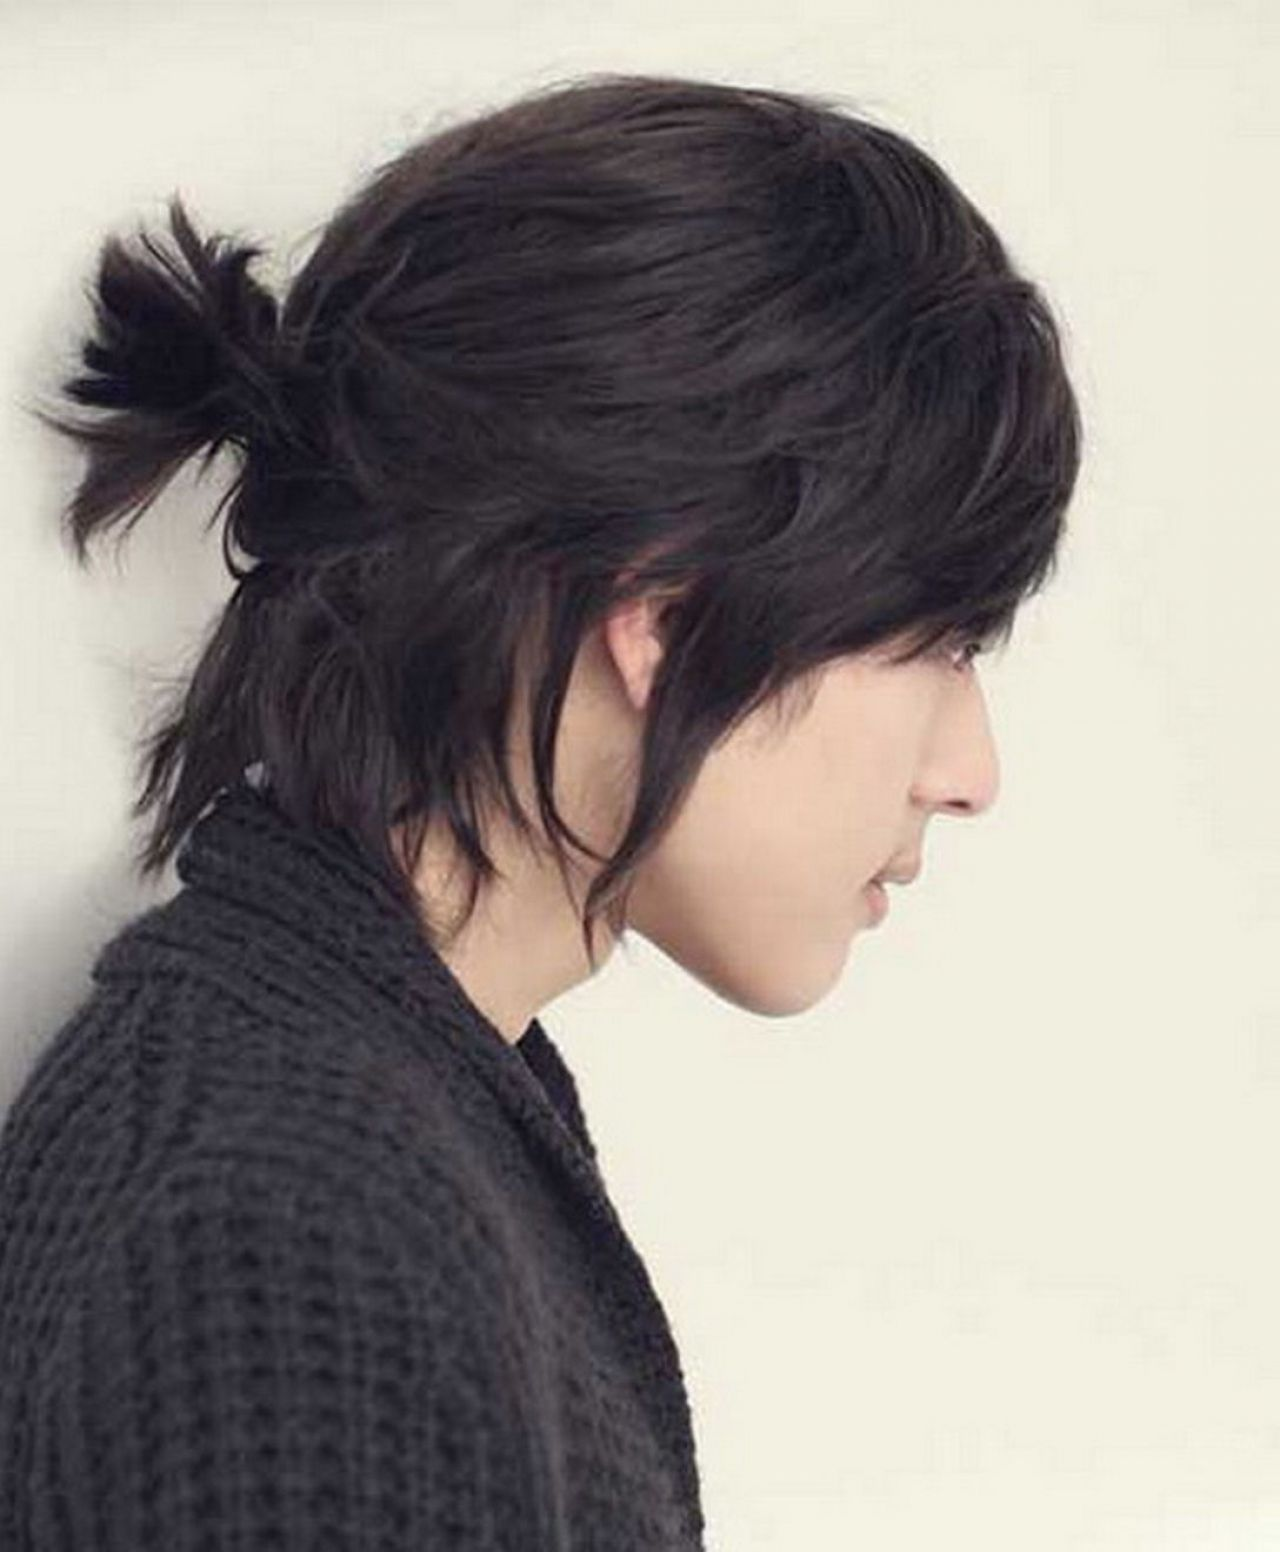 long hairstyles for asian men nvcoj52hj inspiration